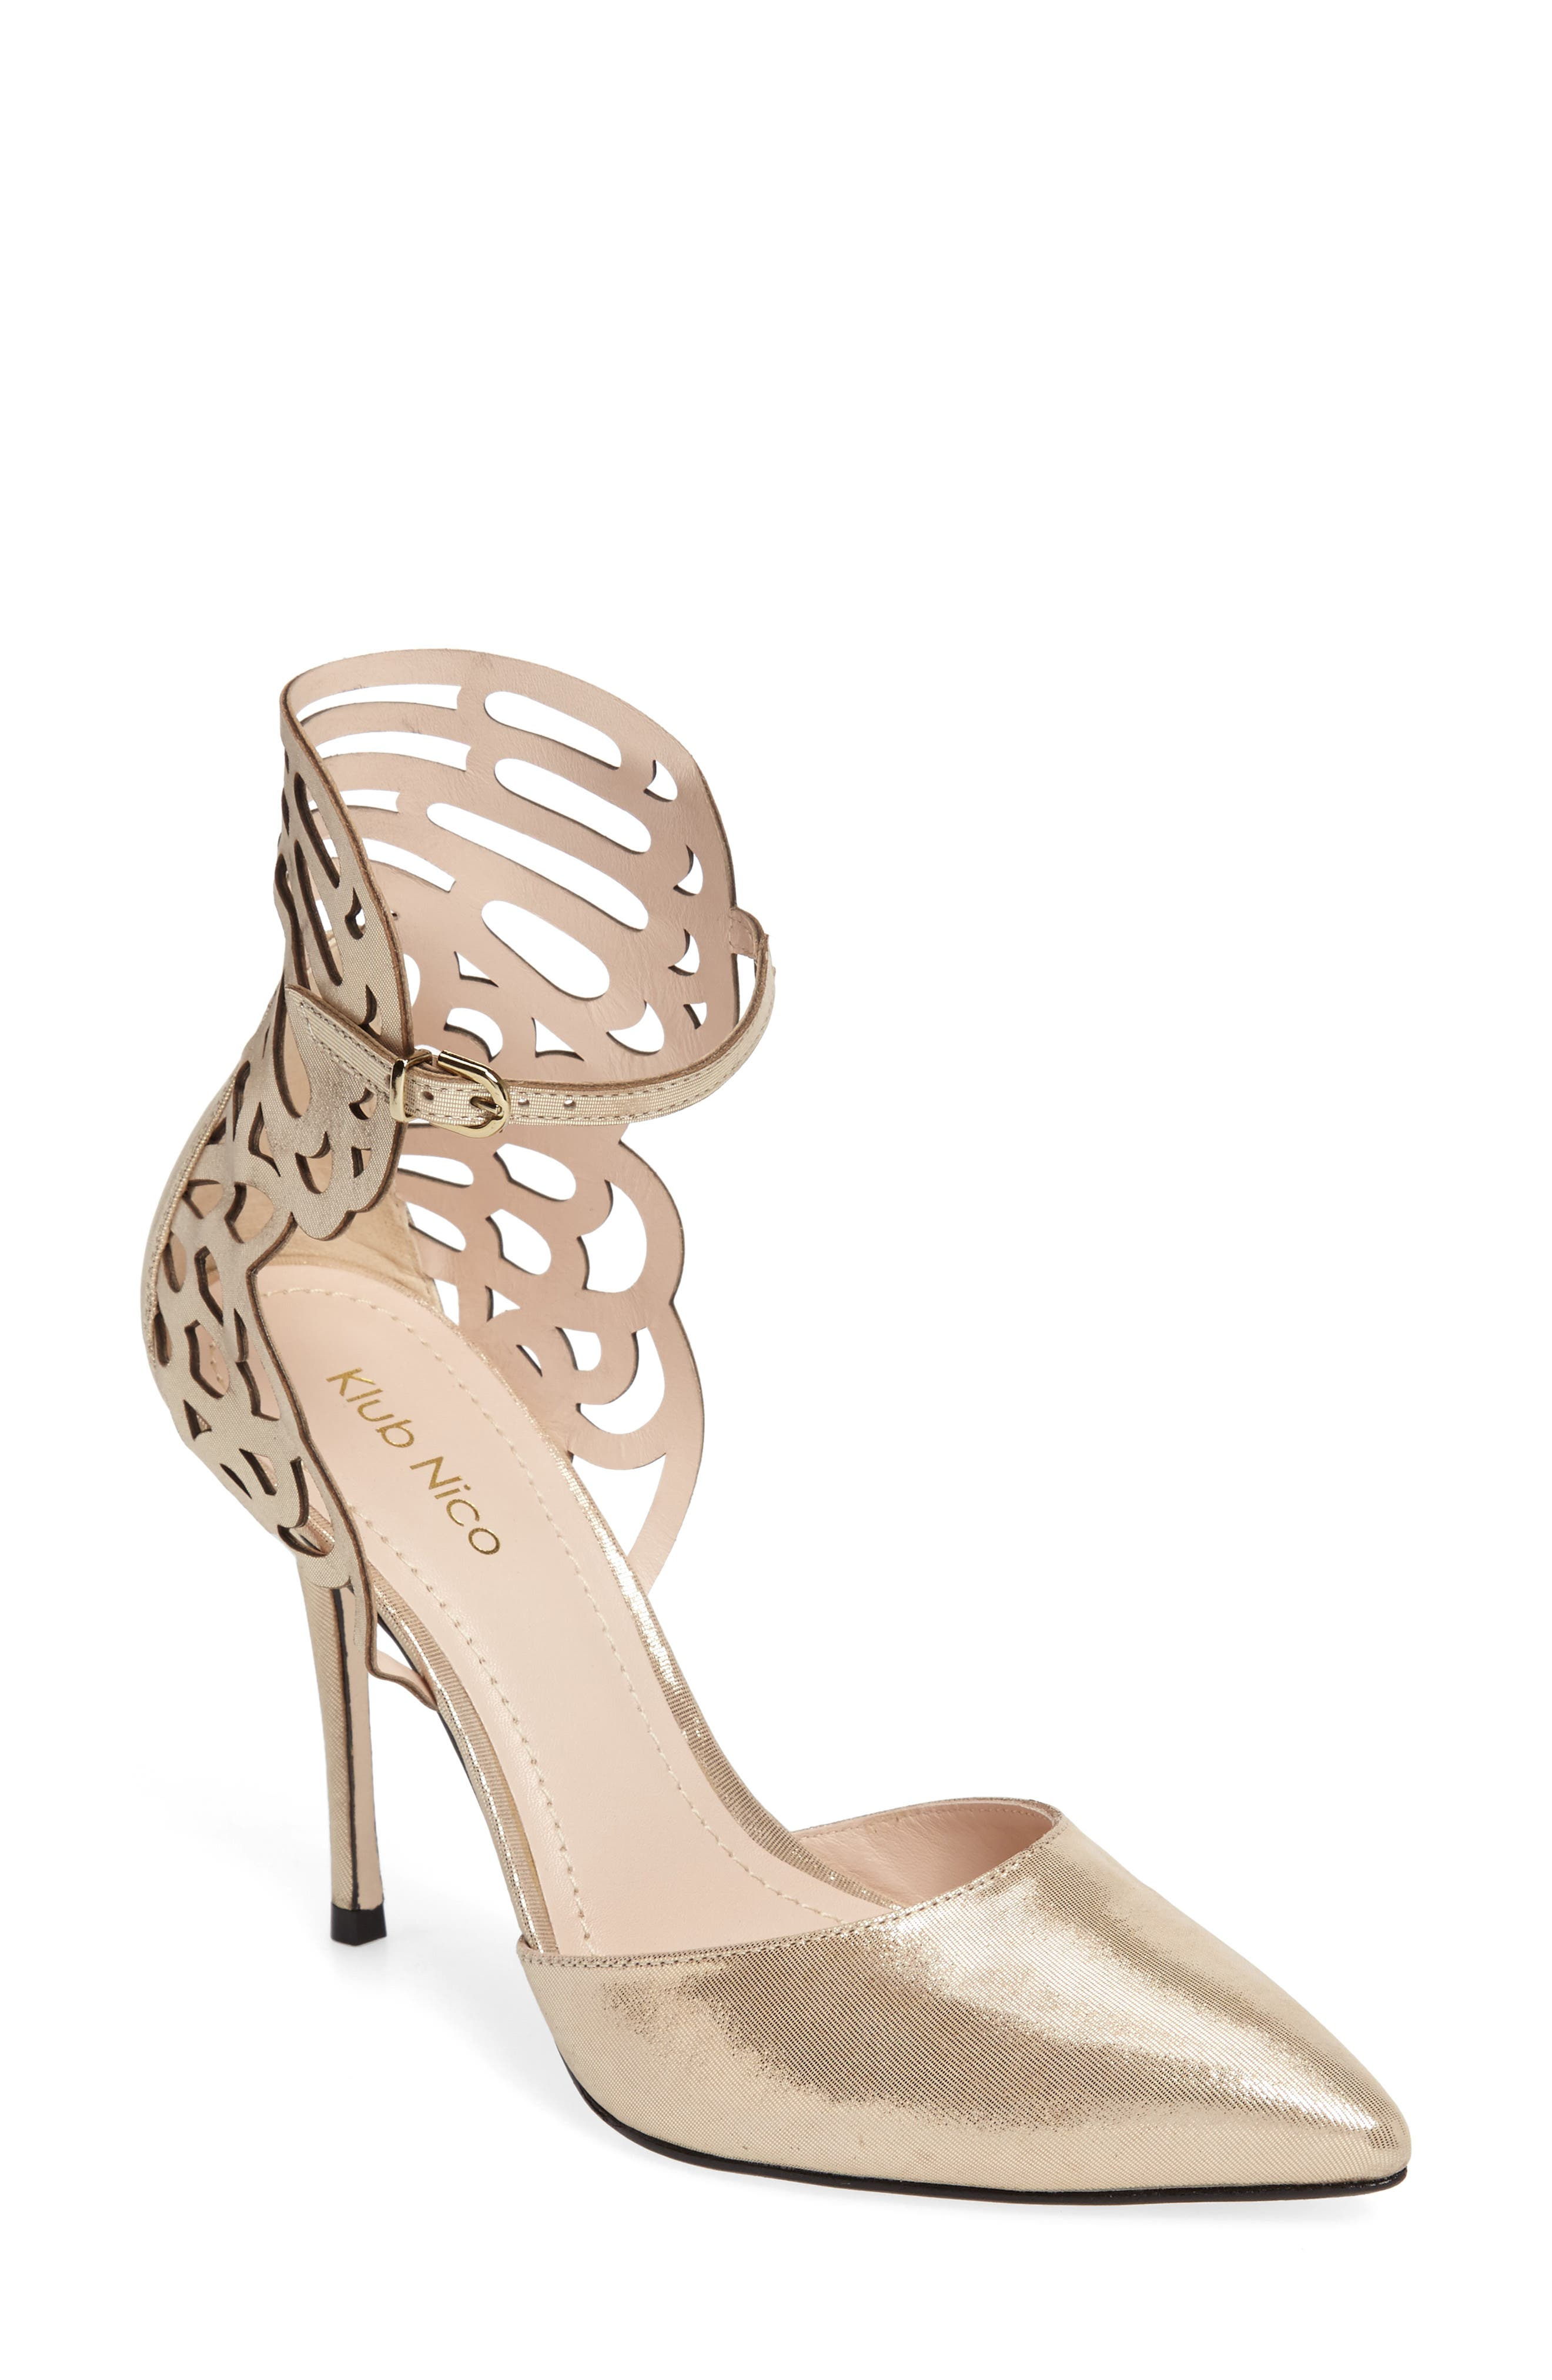 'Regina' Pointy Toe Pump,                             Main thumbnail 1, color,                             Champagne Leather